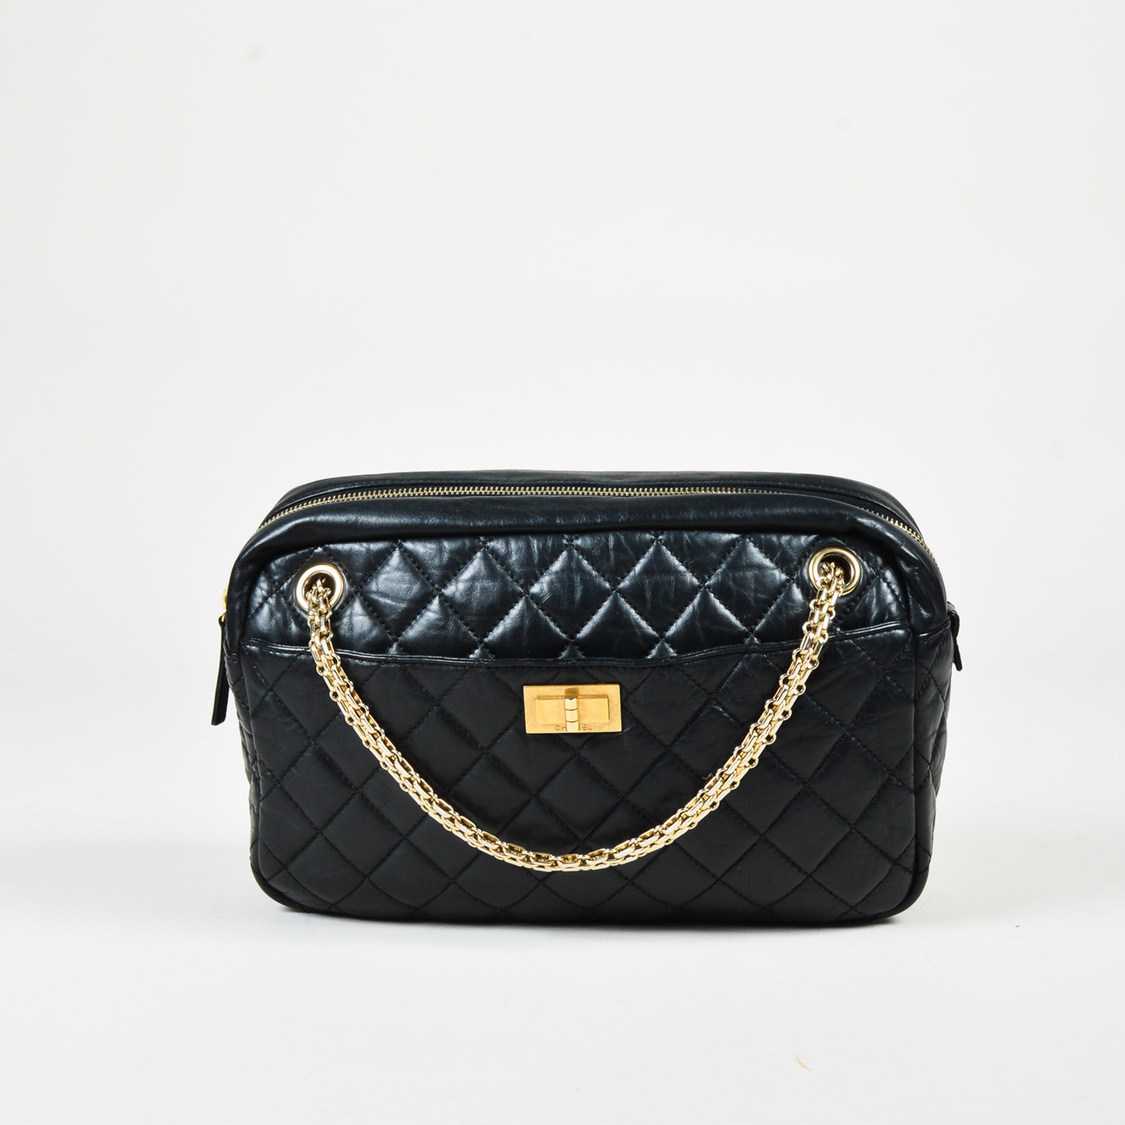 e5daf880a58a Details about Chanel Black & Gold Tone Aged Calfskin Quilted Medium